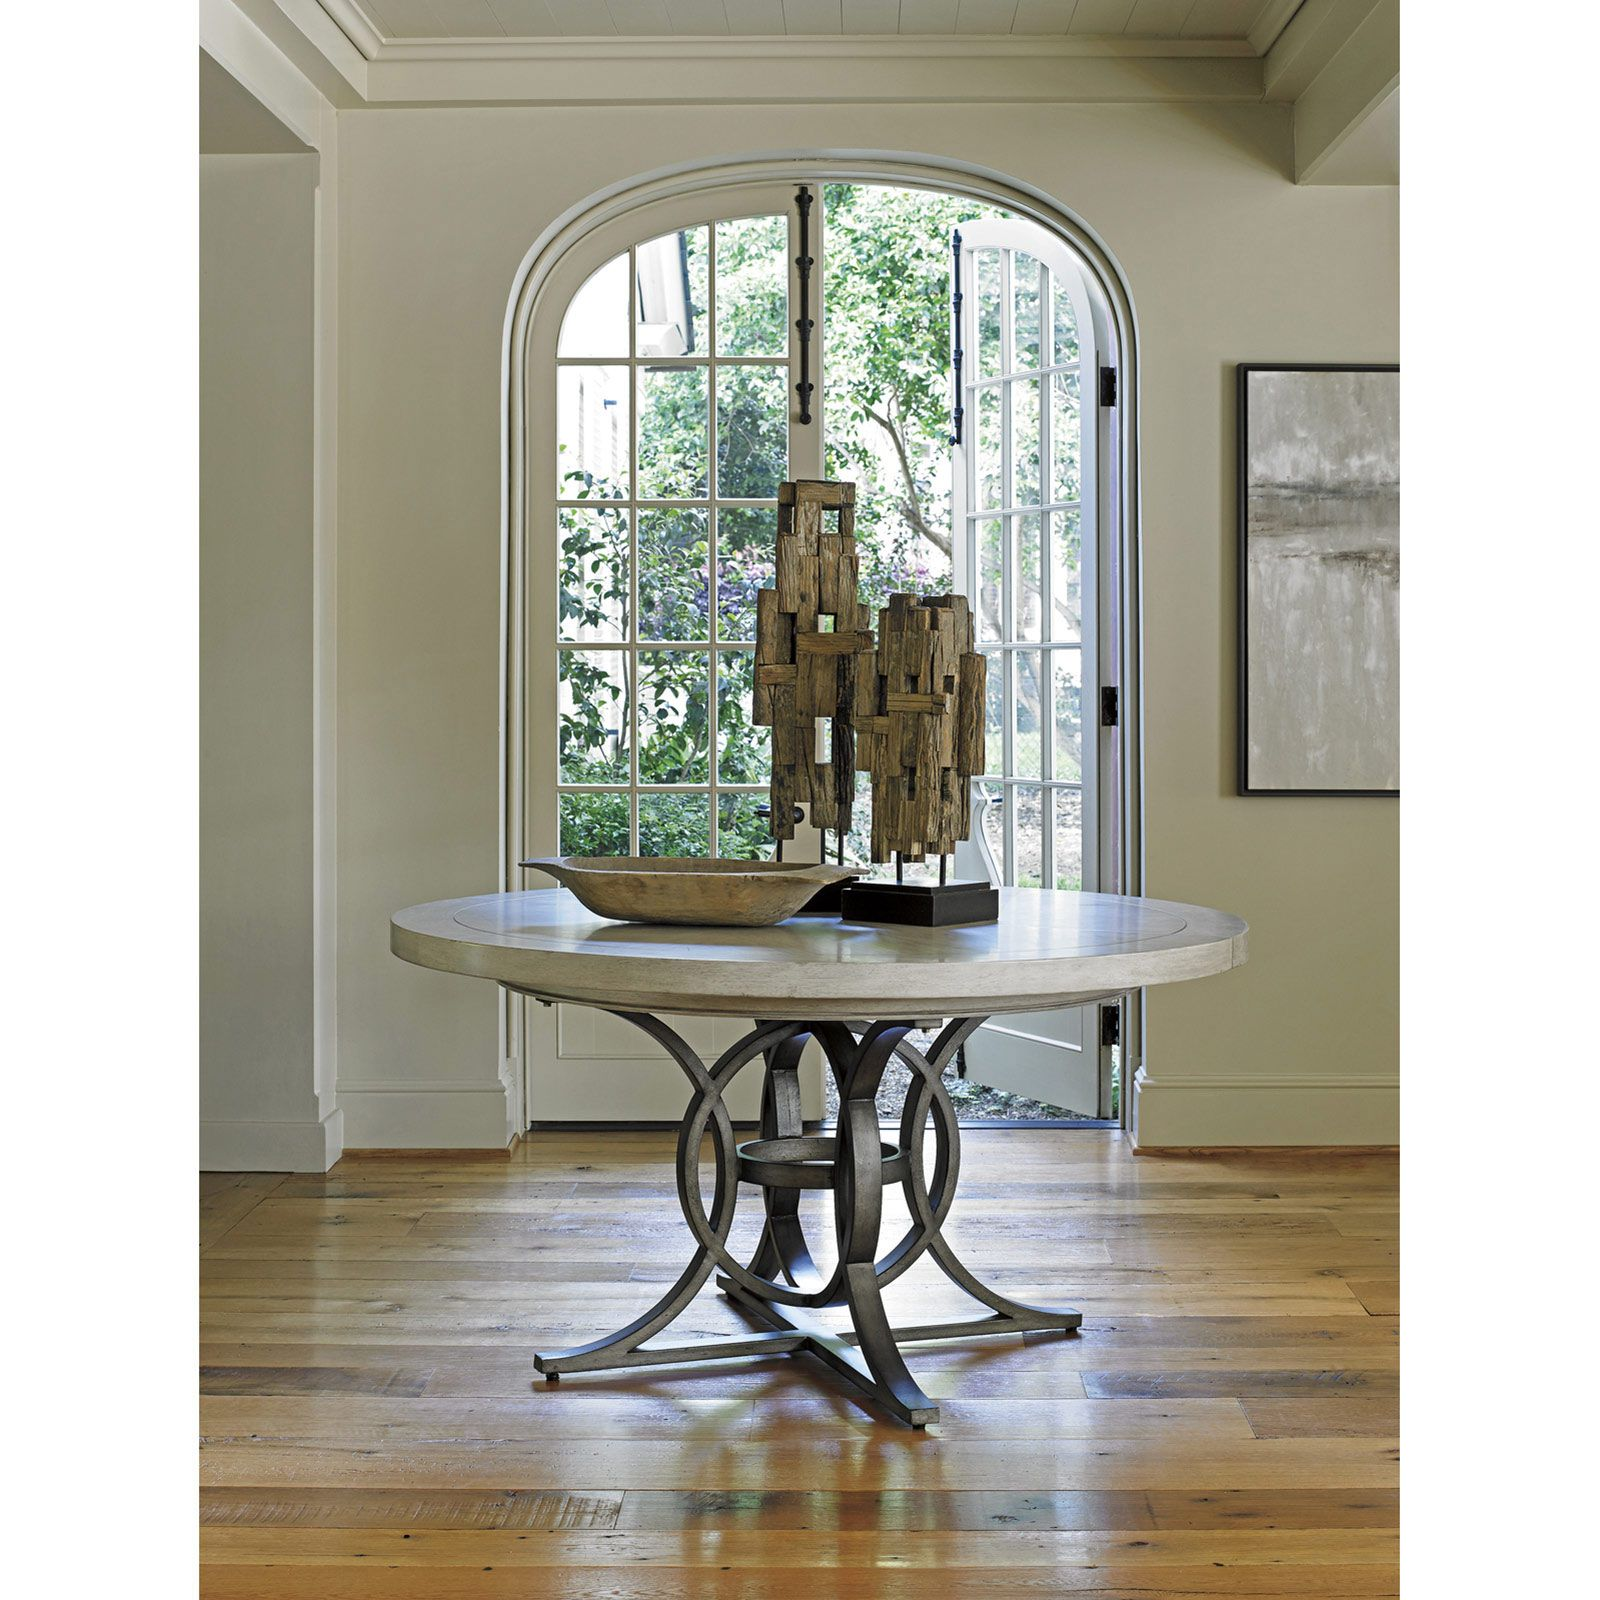 Lexington Calerton Modern Grey Metal Round Whitewash Wood Extendable Dining Table 58 80 In 2021 Round Foyer Table Entryway Round Table Round Dining Table